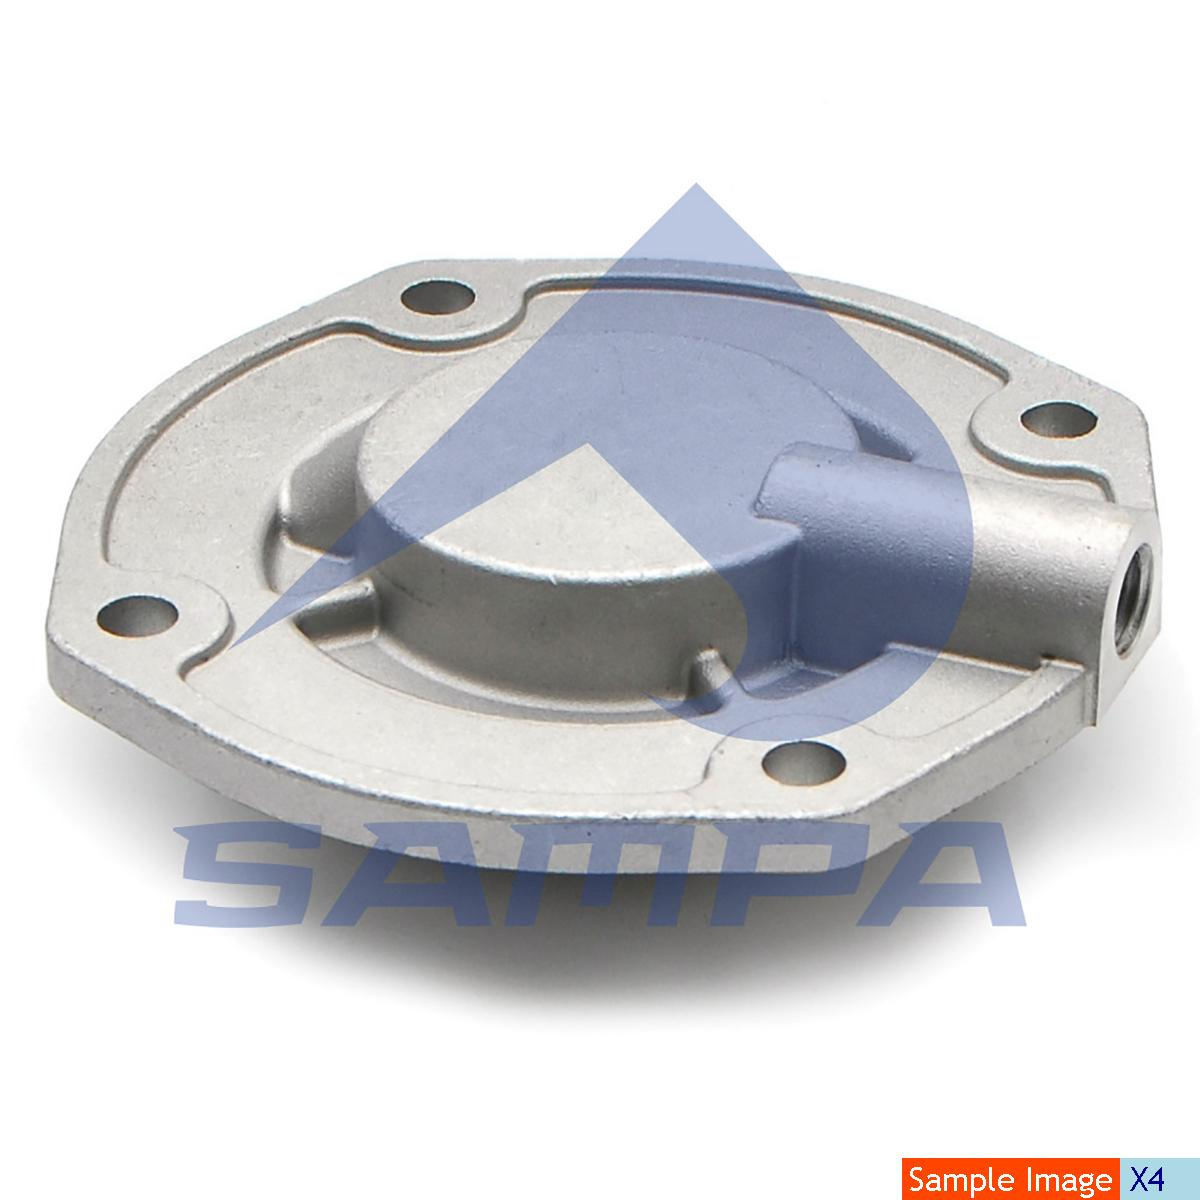 Cover, Cylinder Block, Mercedes, Compressed Air System